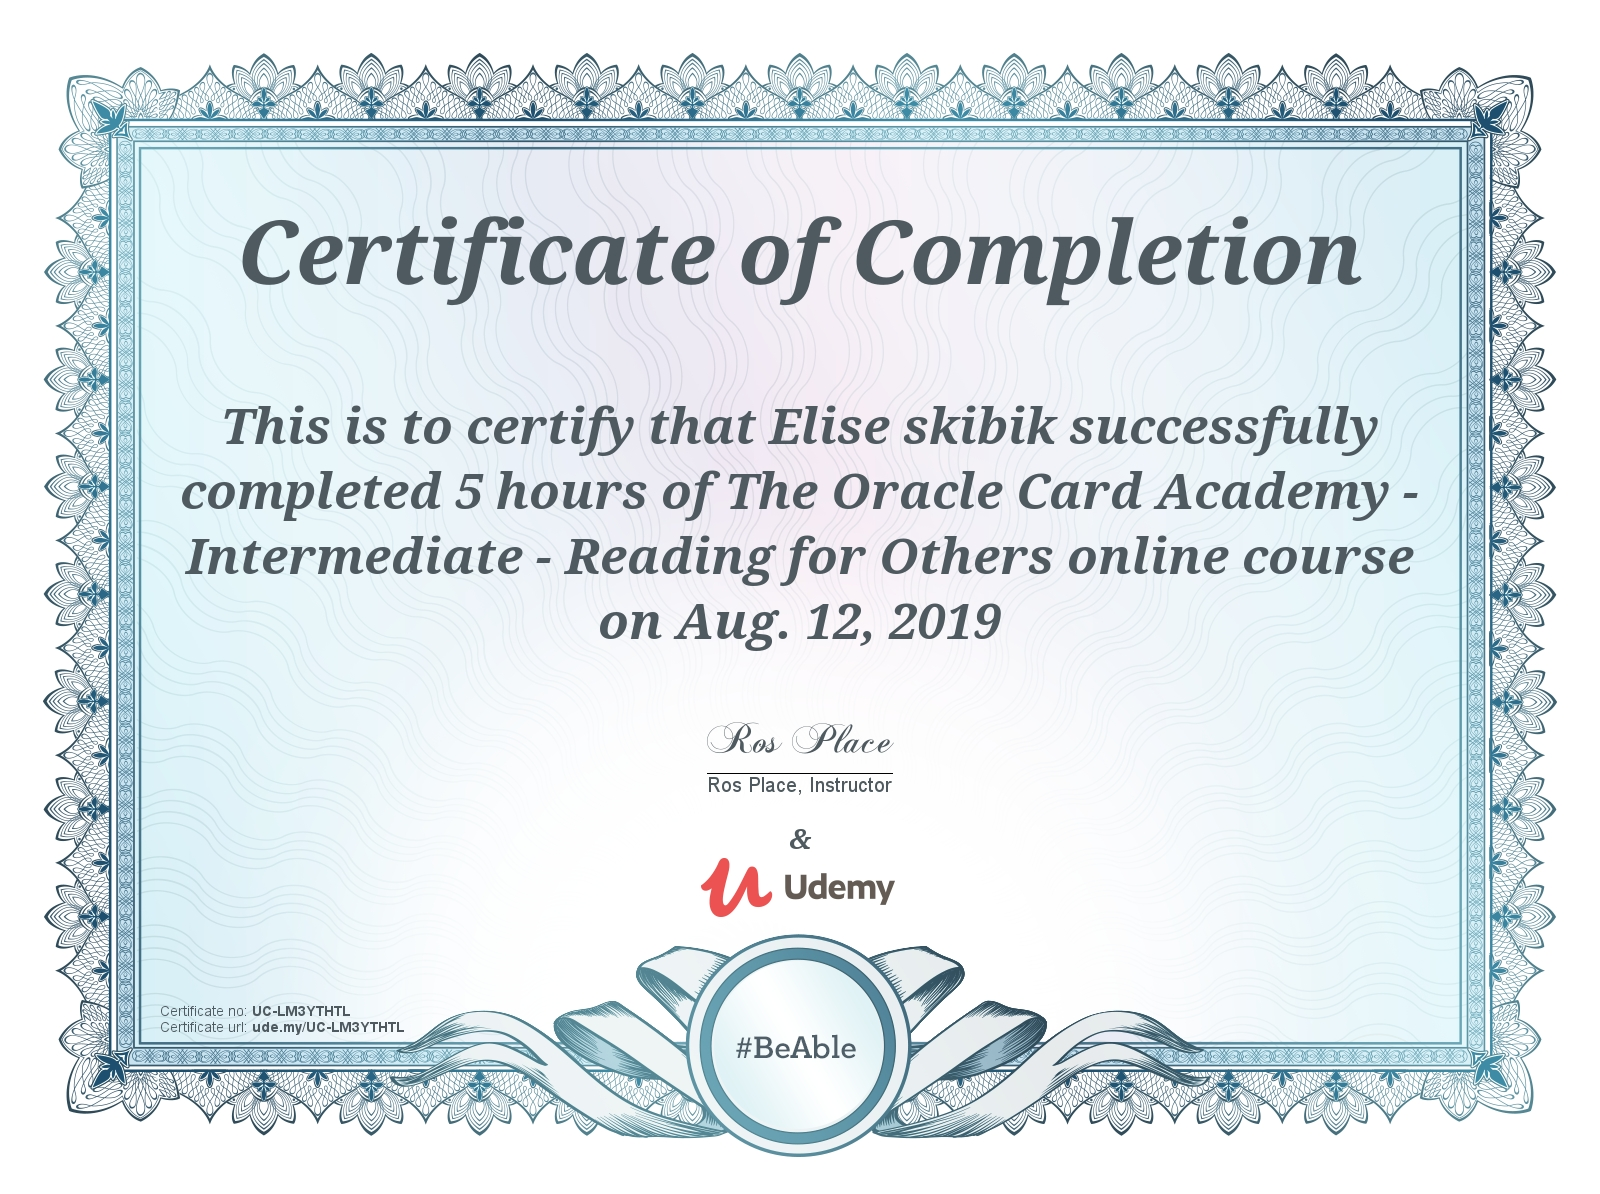 Get Certified - Udemy Offers amazing courses and Instructors